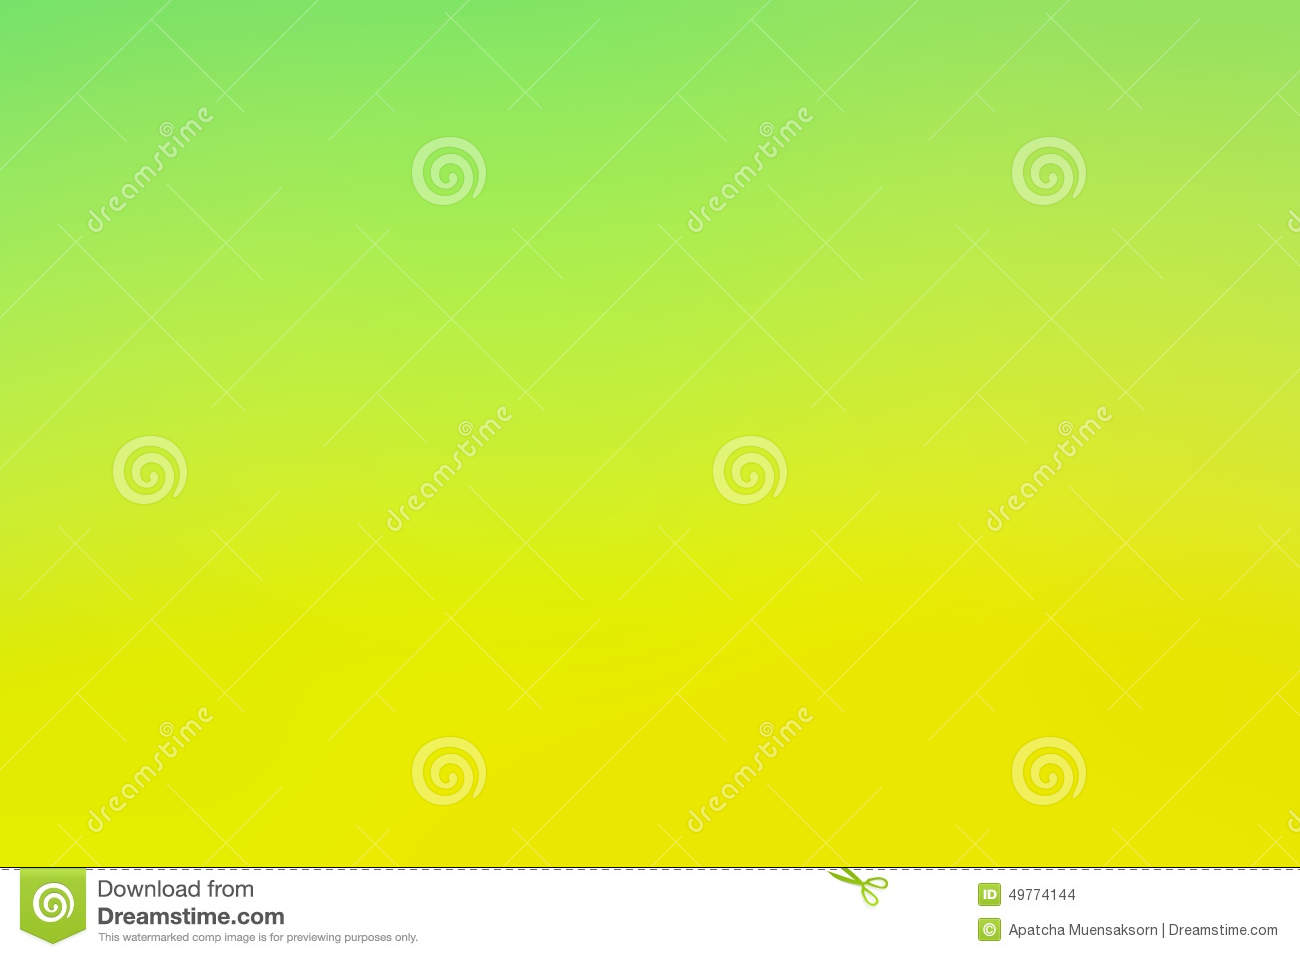 Abstract blurry green yellow color background